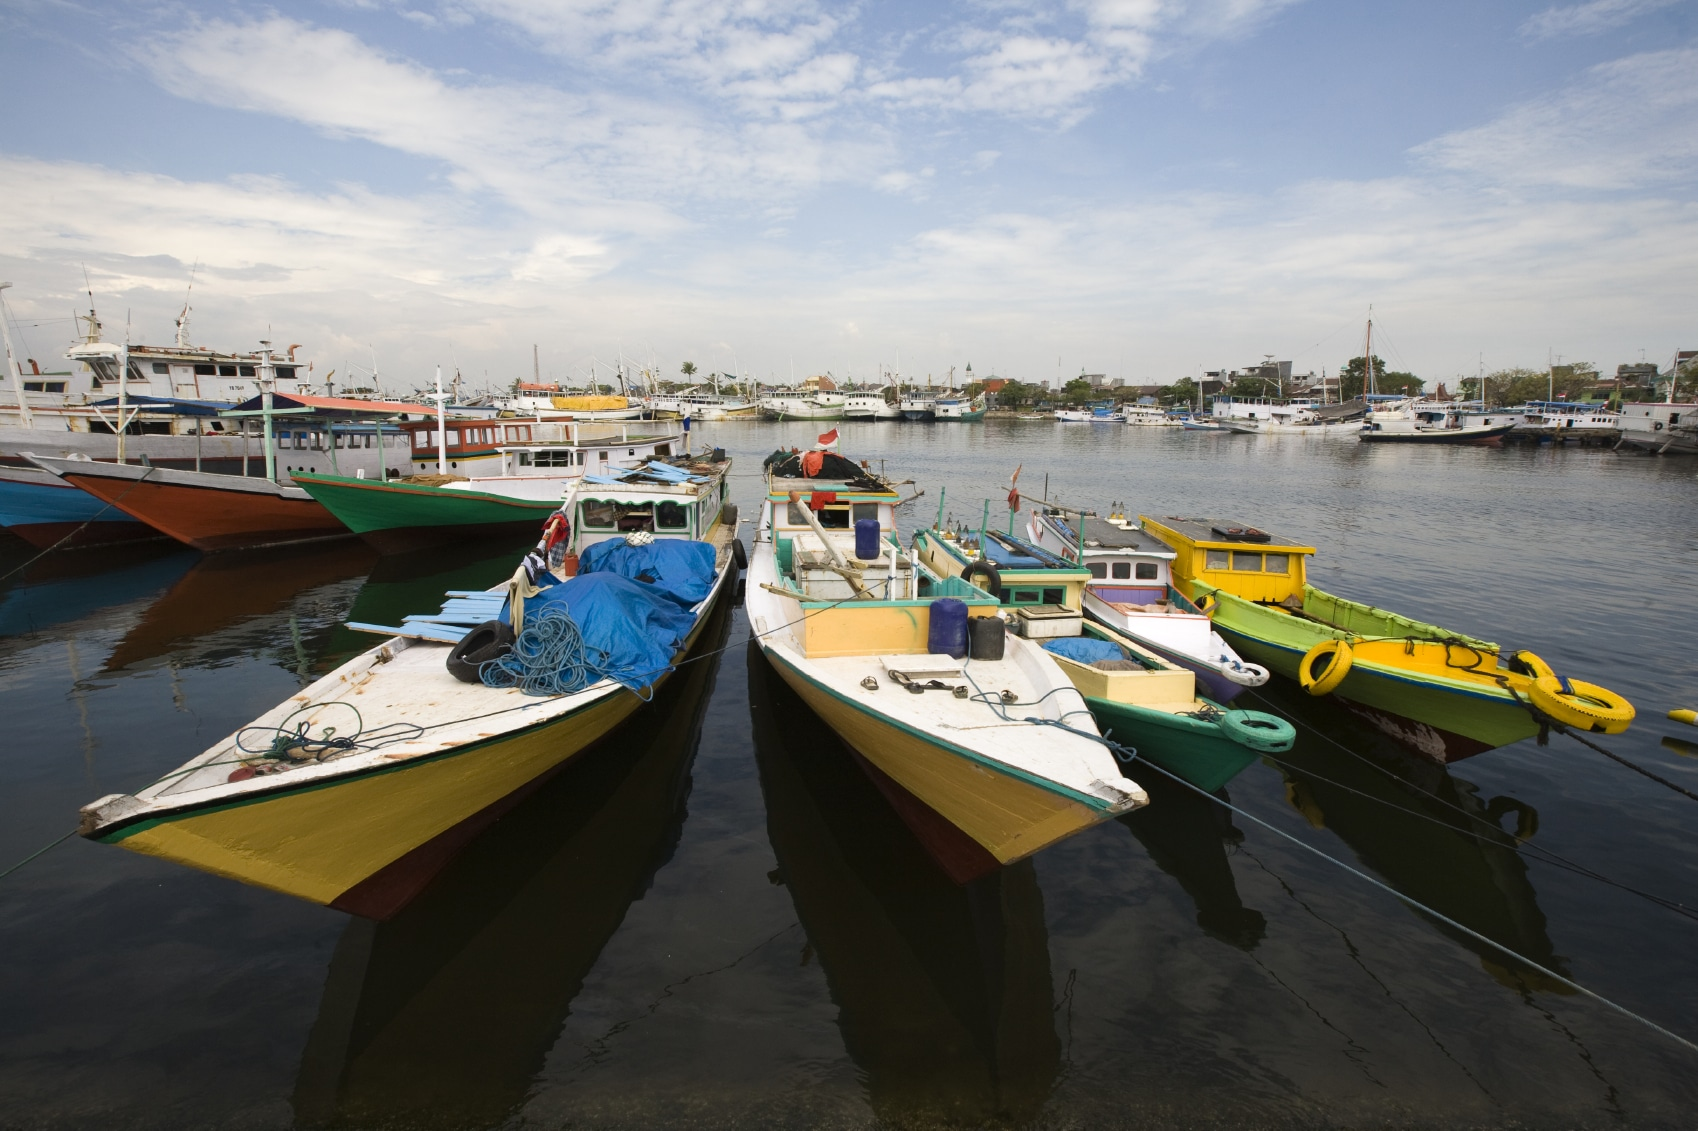 Makassar schooners (pinisi) in Paotere harbor, the old port of Makassar,  Indonesia